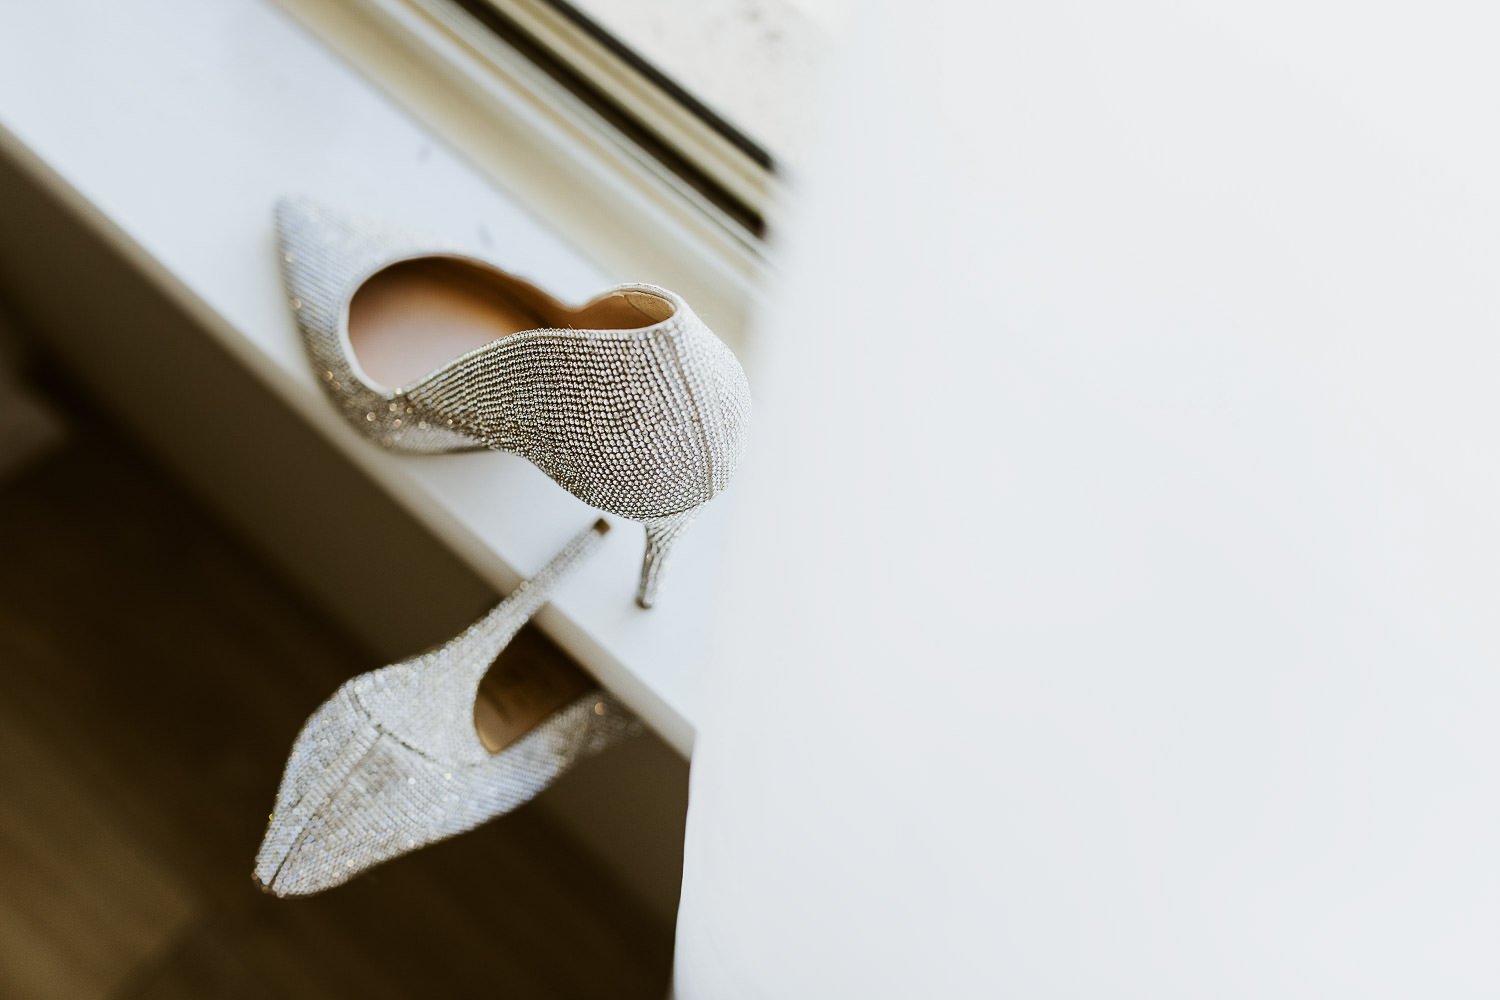 Brides diamonte wedding shoes on window sill